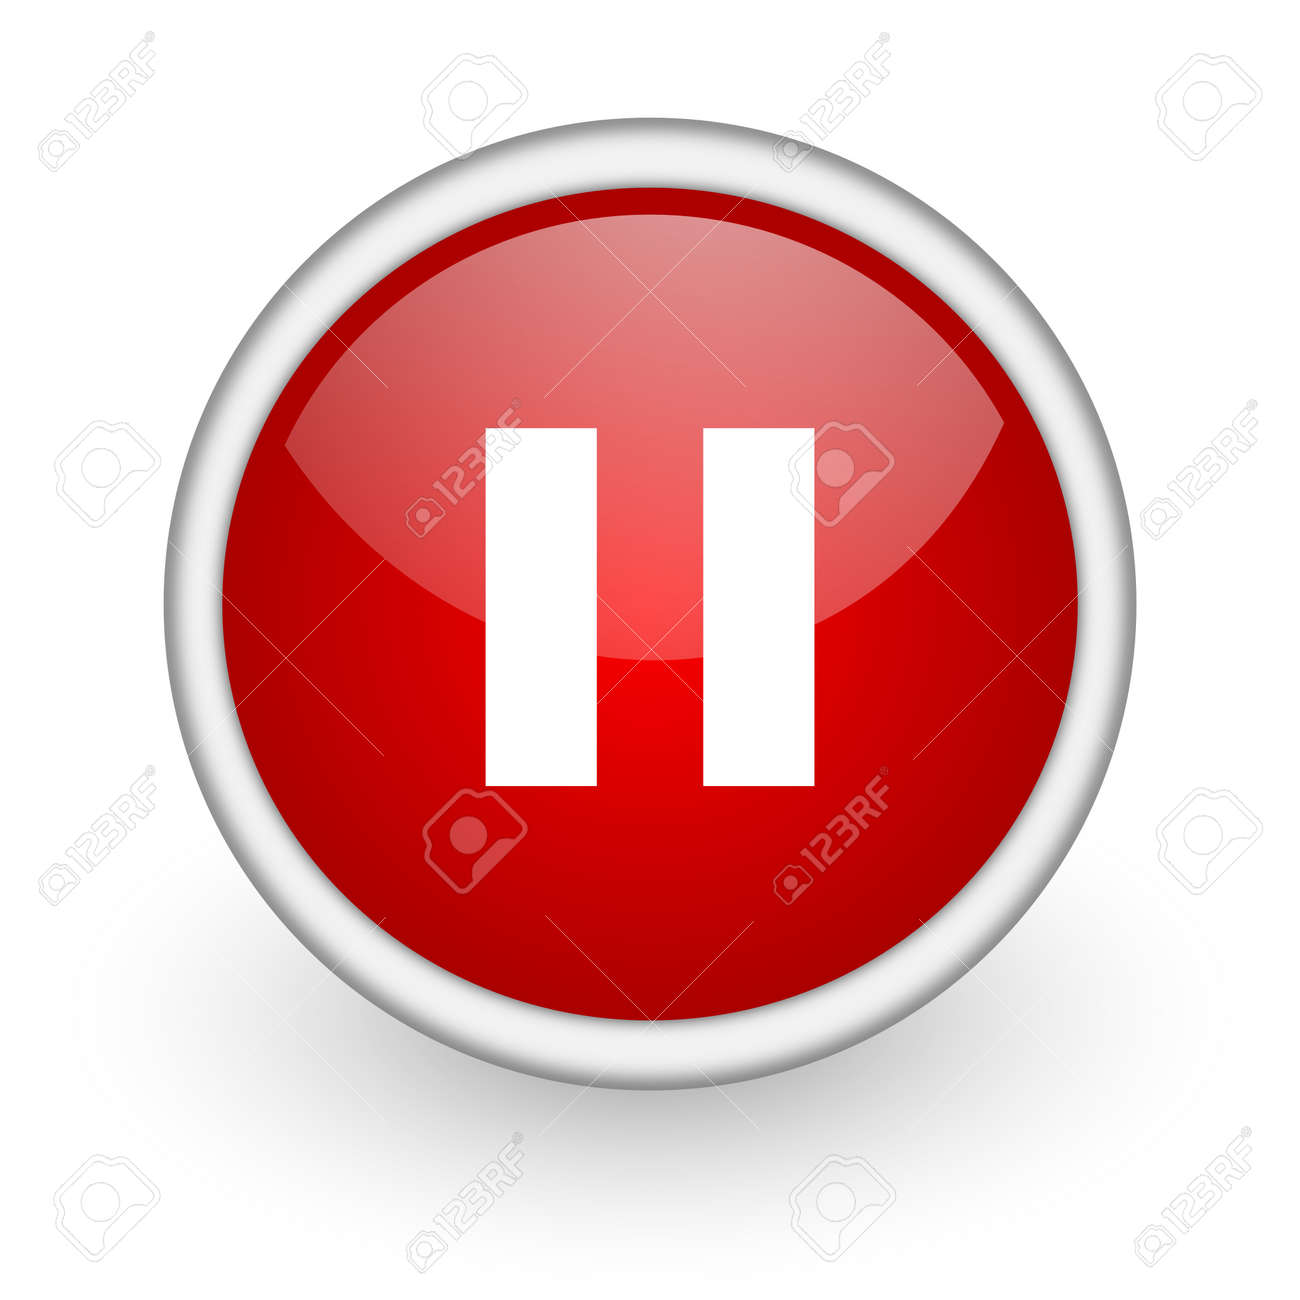 pause red circle web icon on white background Stock Photo - 17518192